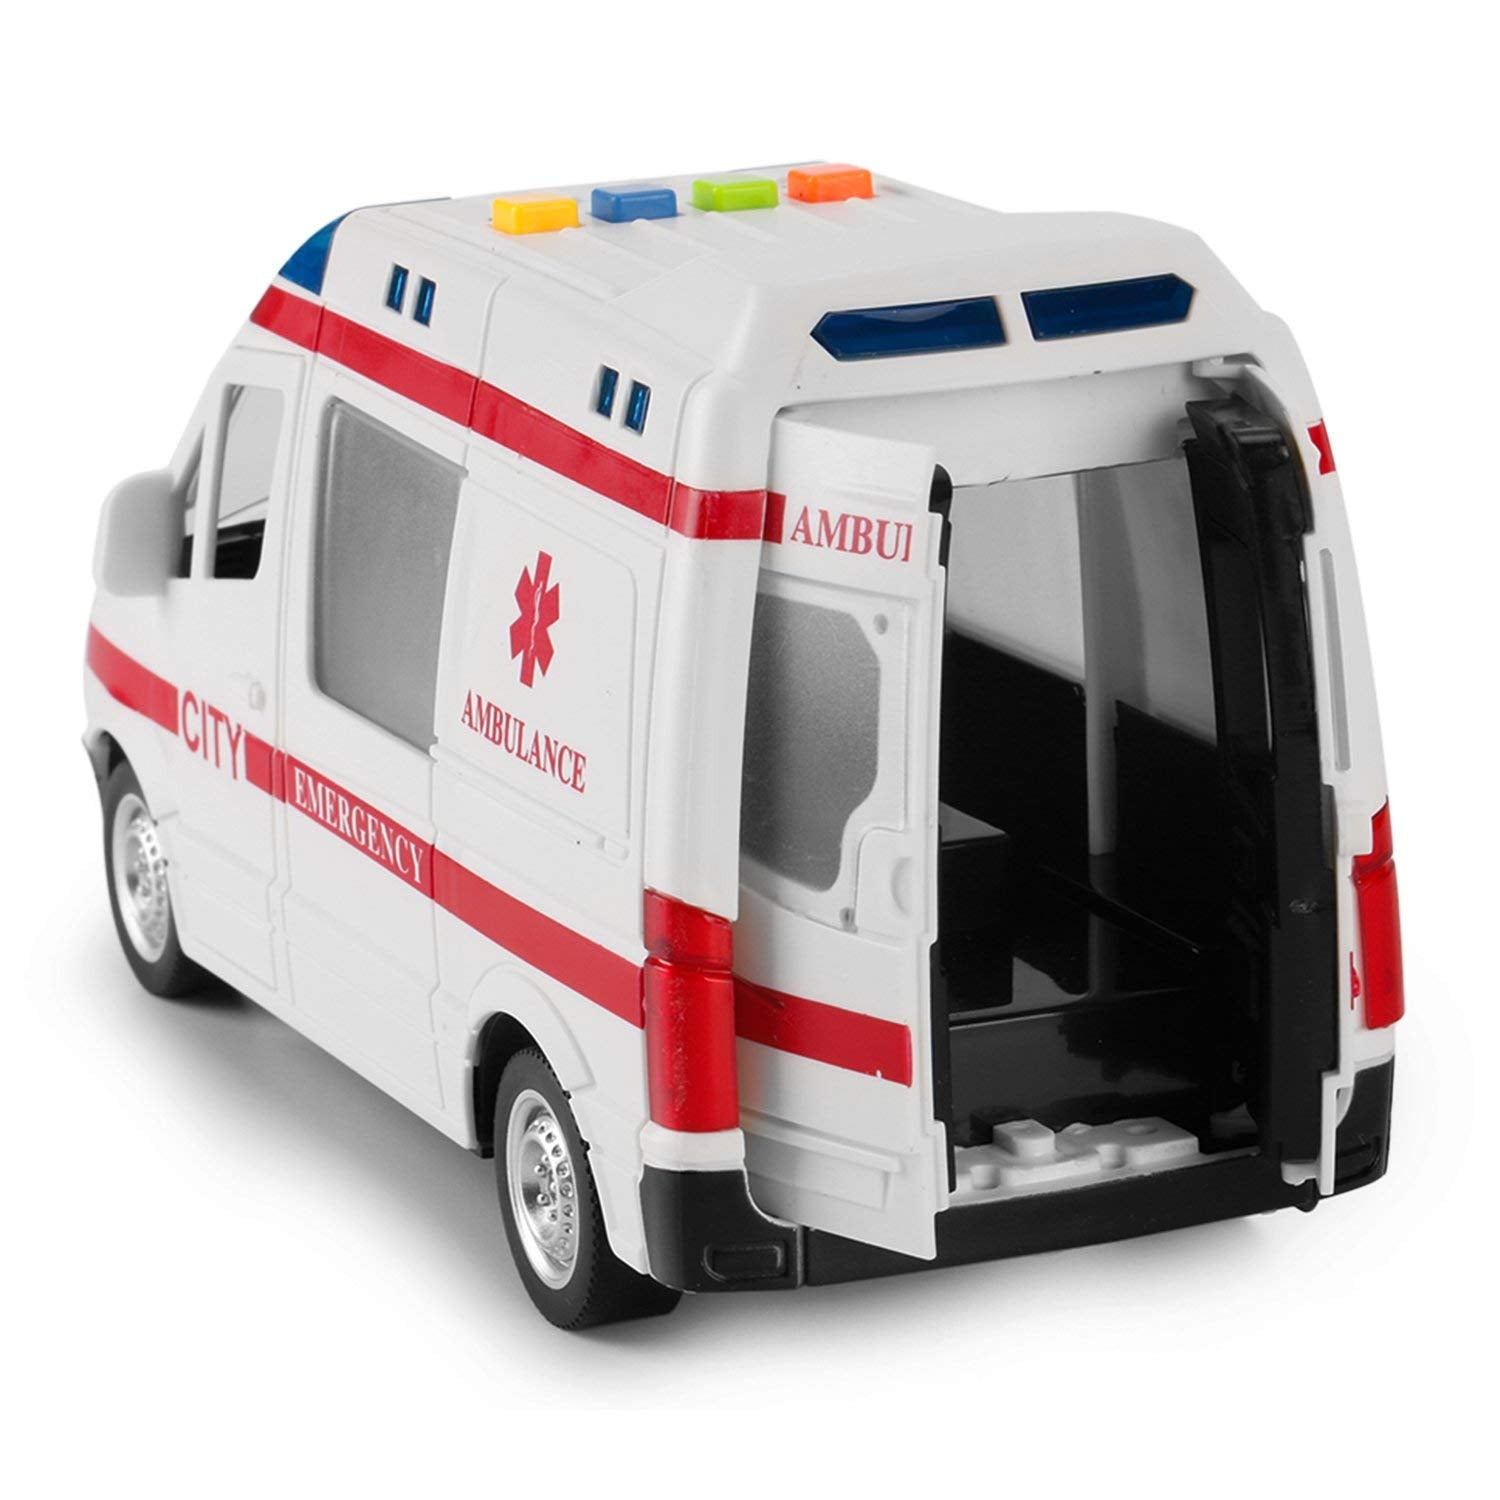 Large Friction Powered Rescue Ambulance 1:16 Toy Emergency Vehicle w/ Lights and Sounds